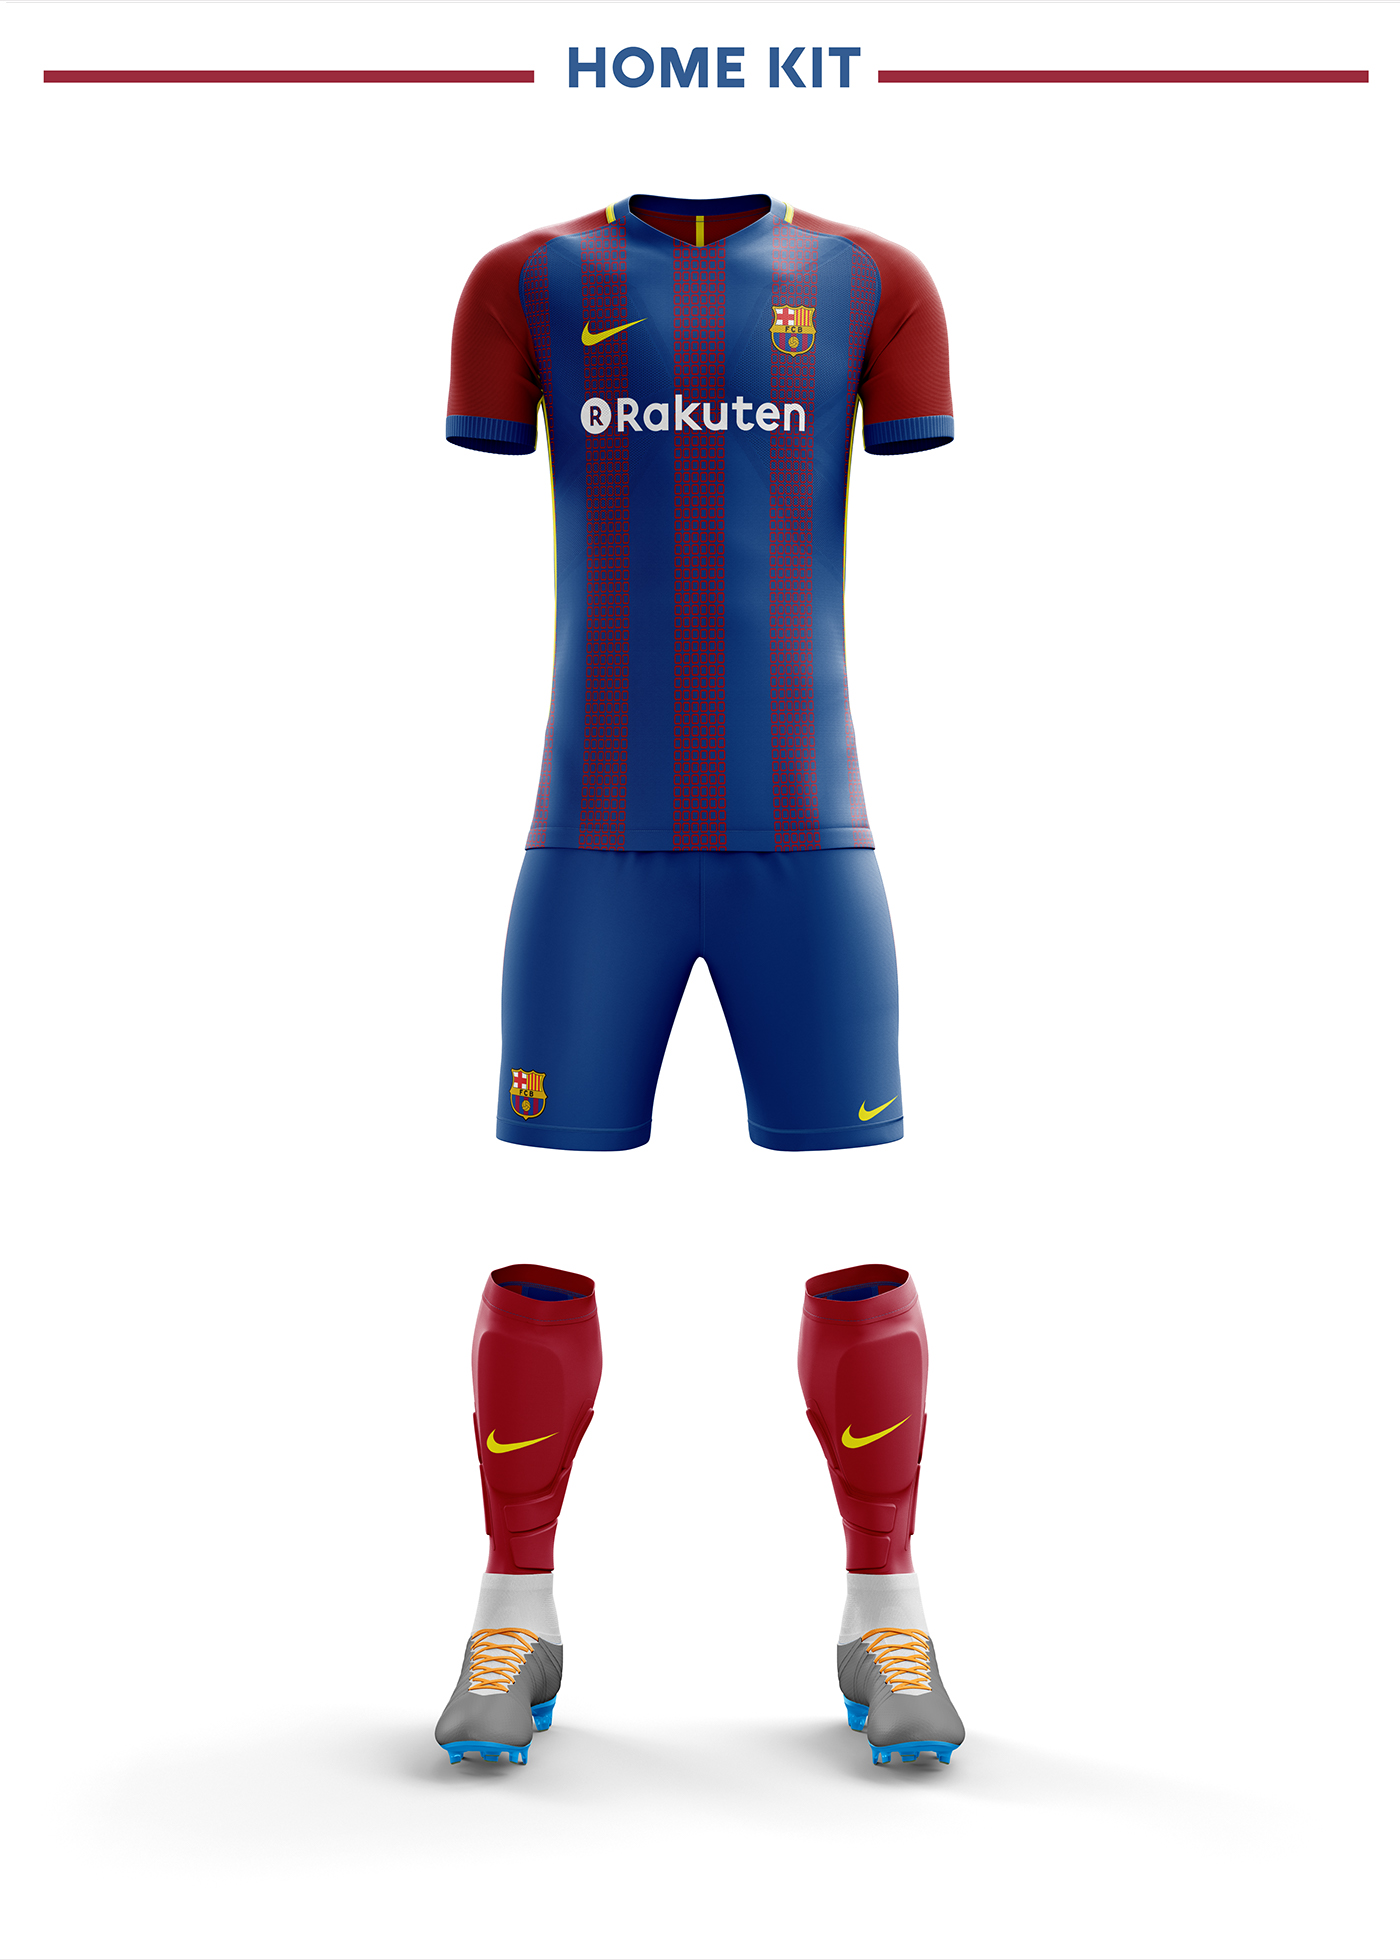 Fc Barcelona Football Kit 18/19  on Behance